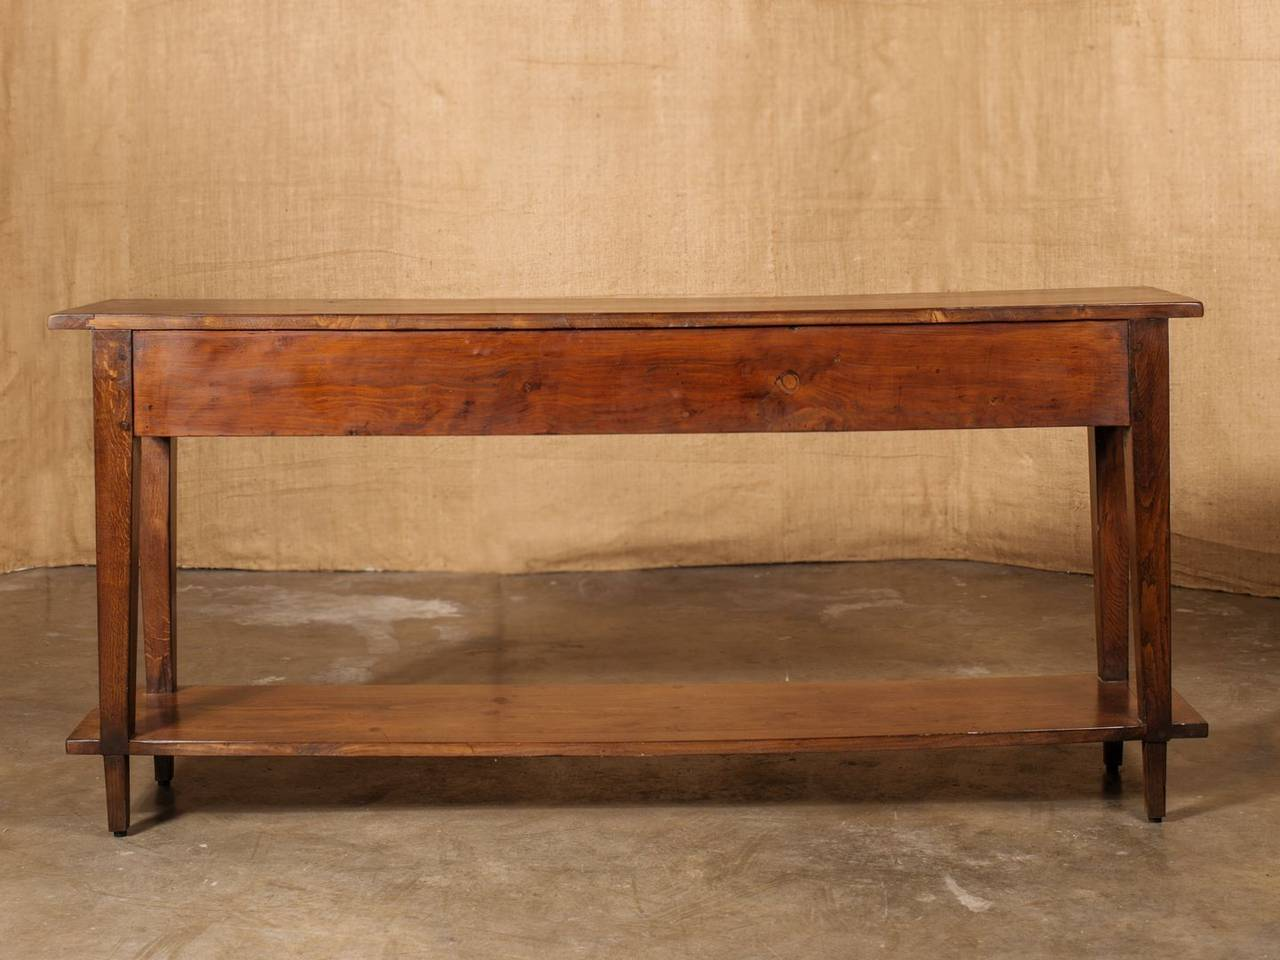 Sofa Table French Country Rustic French Country Sofa Table At 1stdibs